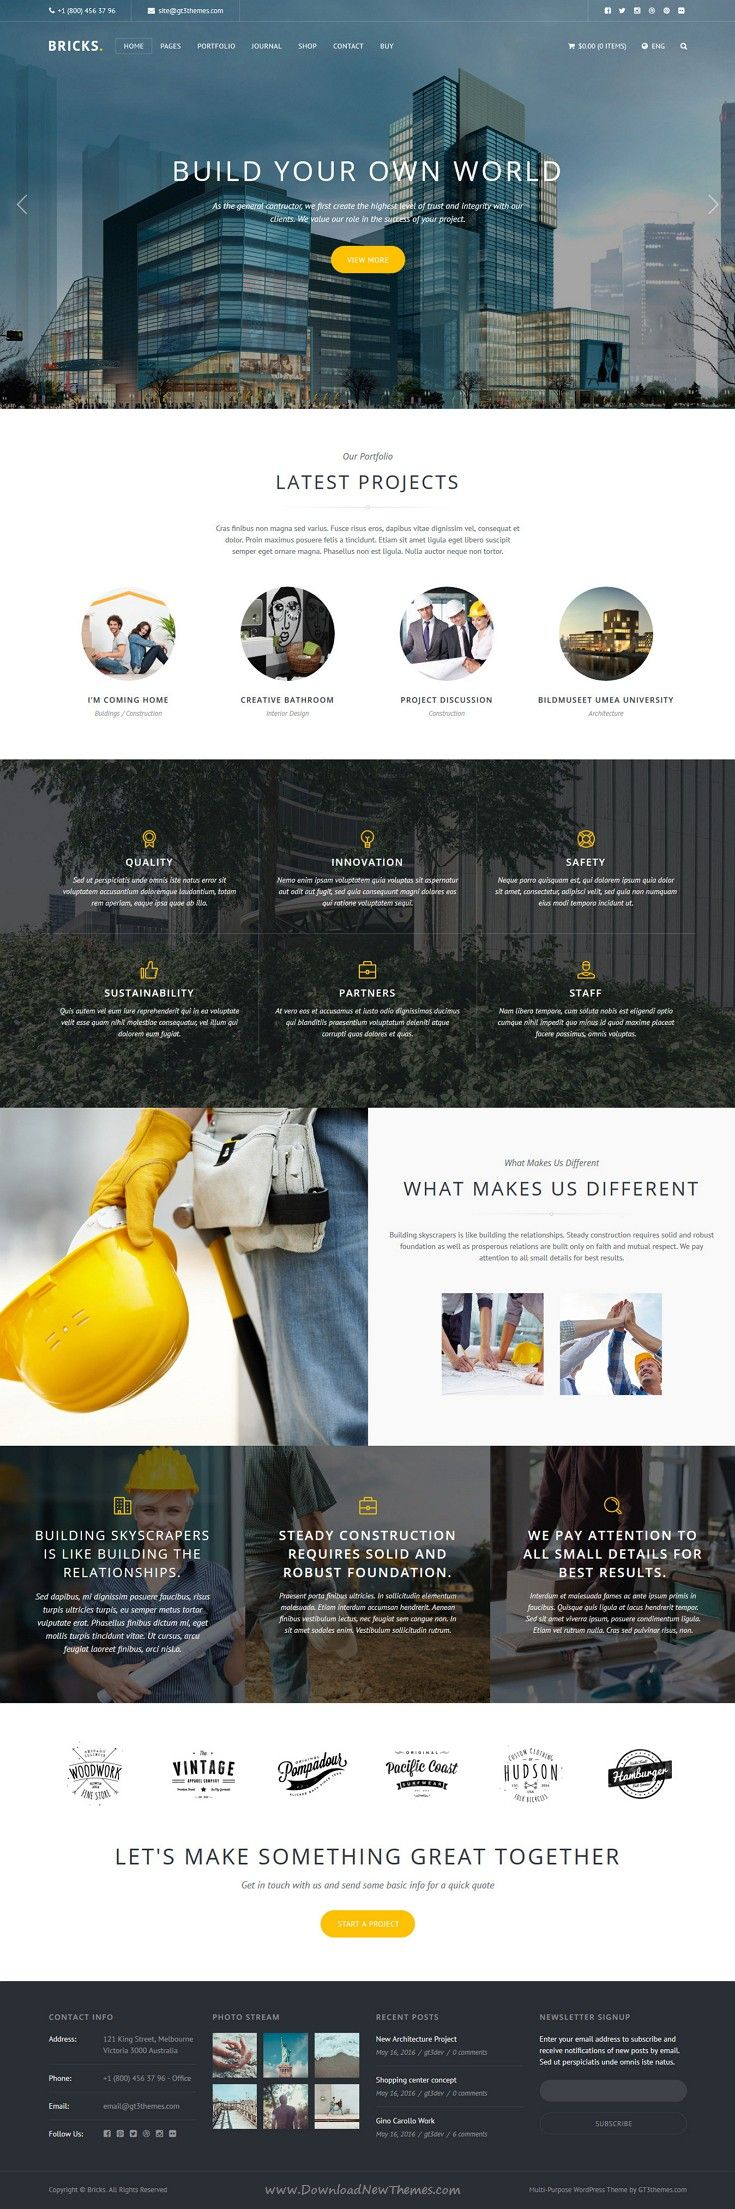 Bricks is beautiful responsive premium #WordPress Theme for Construction & #Building business #website with 4 stunning layouts and great features. Download Now! http://amzn.to/2rsjy6P